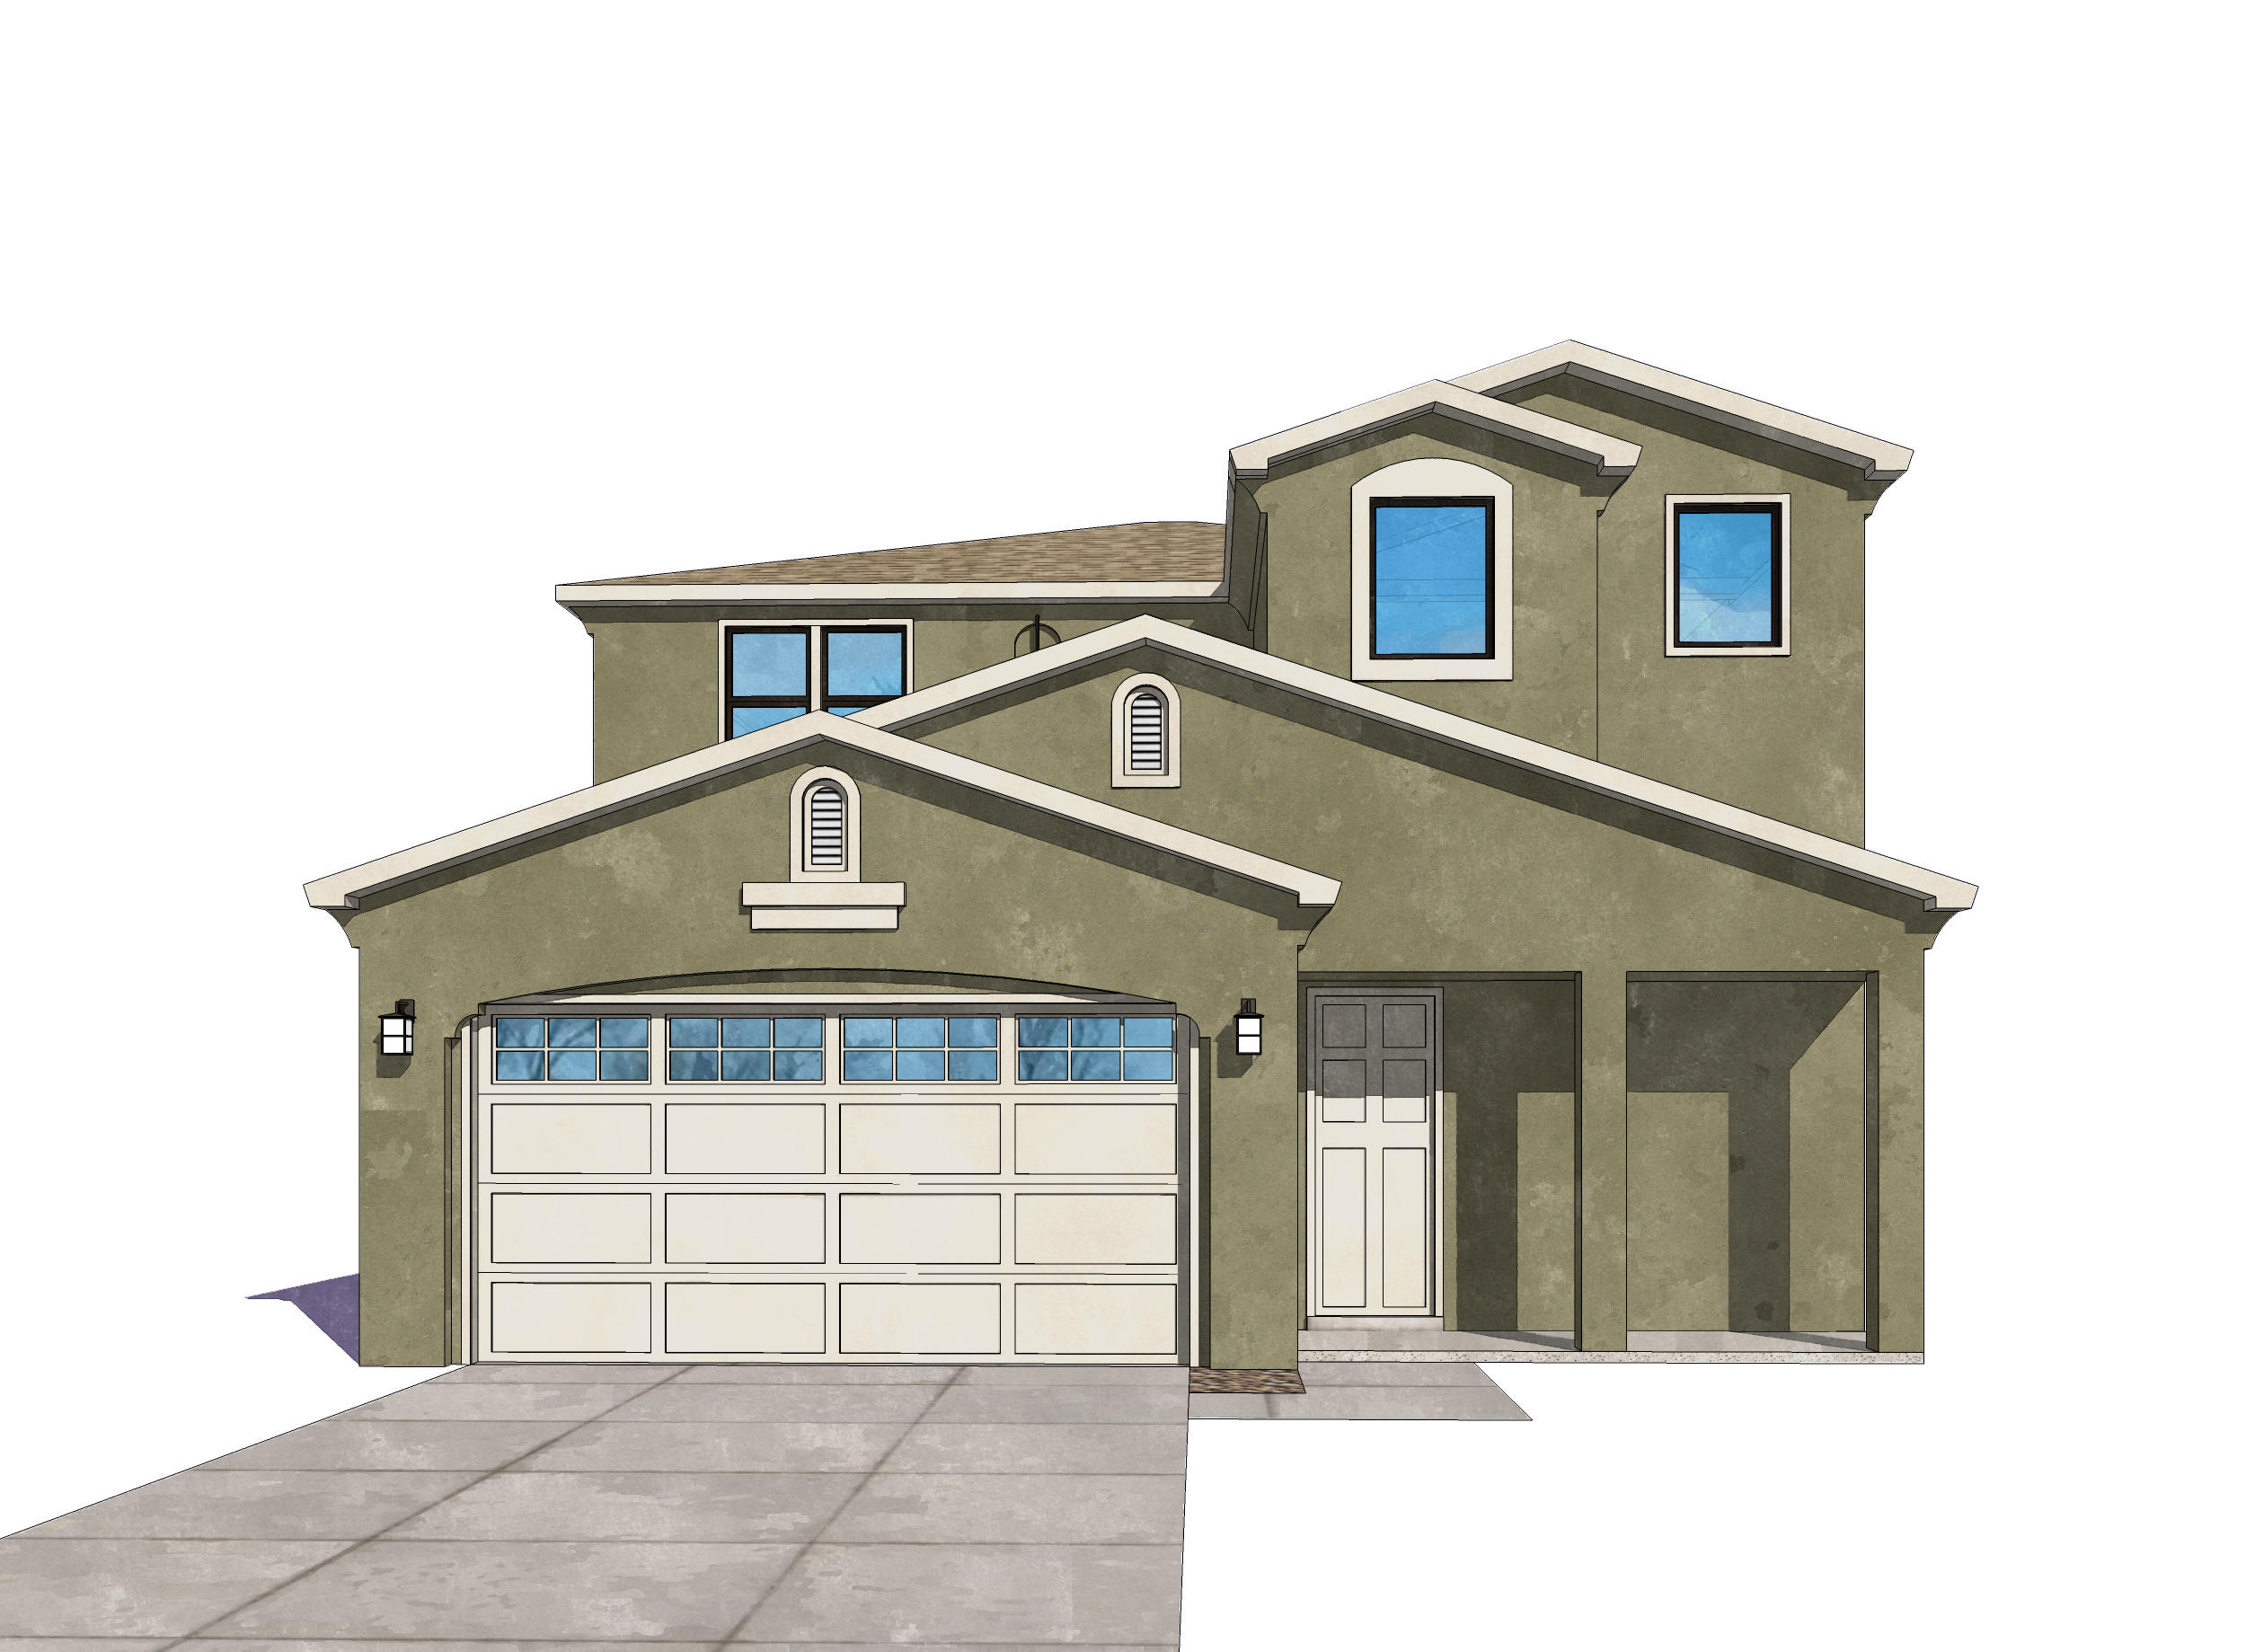 UNDER CONSTRUCTION. October completion. Photos are model renderings. Actual colors and selections may vary. Amazing multi-generational house w/a master up and down, both with separate shower and tub. Plus 2 or 3 addtl bedrooms. Living areas up and down. 3.5 baths. Samsung SS appliances incl range, SxS refrig, DW, micro + washer & dryer (white). Blinds throughout. FP, and energy efficient features: LowE dual pane windows, Energy efficient gas furnace, tankless water heater, Silver rated GreenBuildNM. Home includes a 2-10 Ltd 10 yr warranty + exclusive 1-yr Builder warranty. Tiled kitchen, laundry, baths, dining. Walk in closets. Large island in Kitchen. 9'ceiling with 10' coffered areas. 9'x8' glass sliders to covered patio.